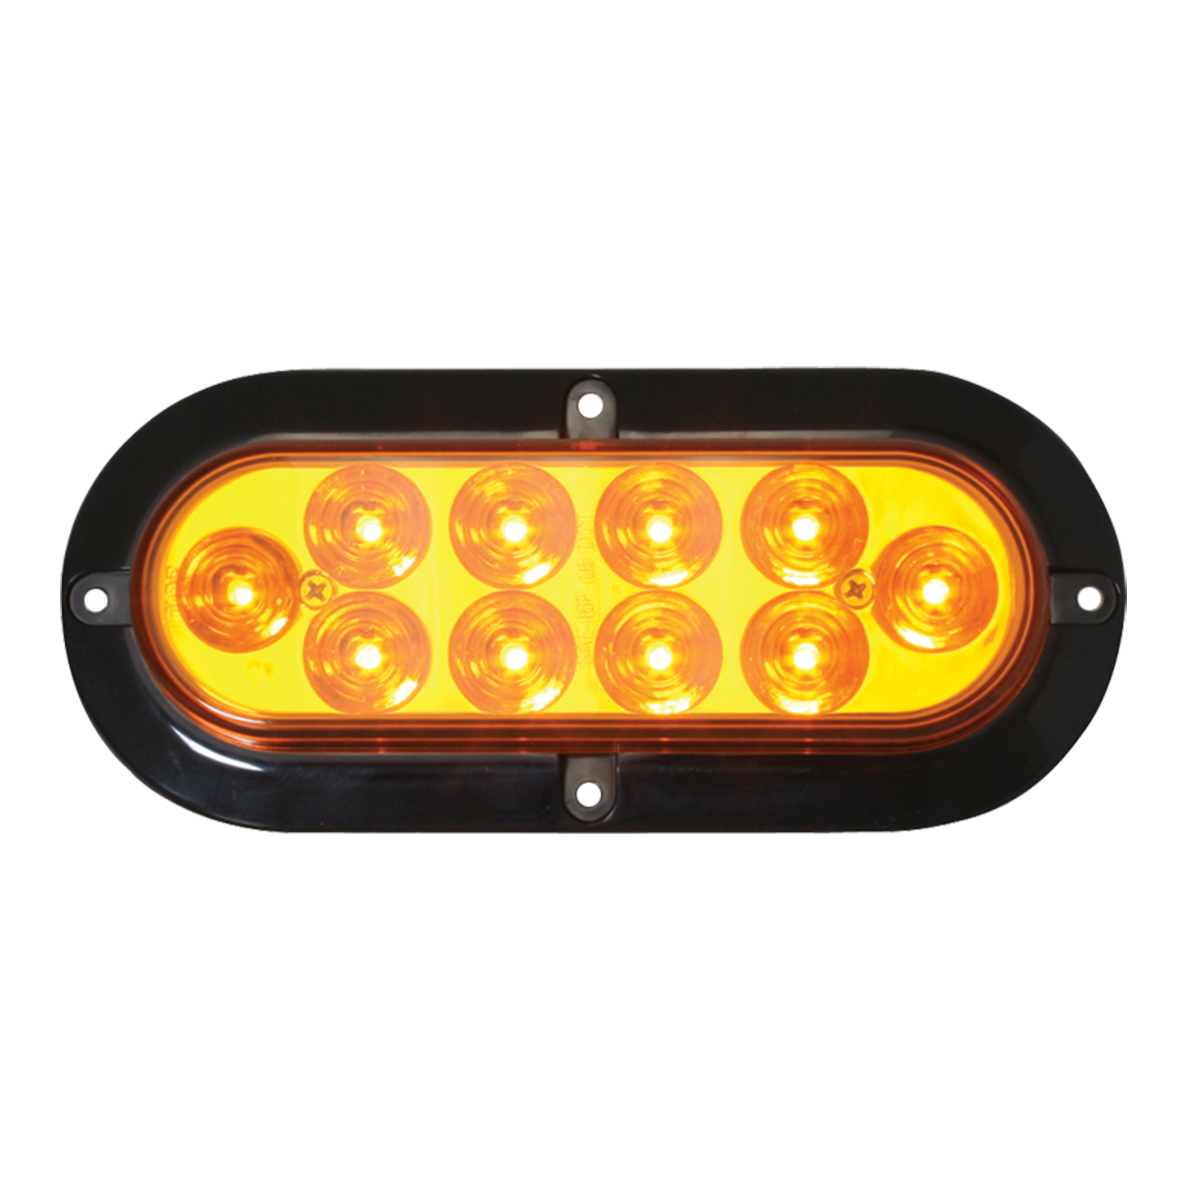 76870 Surface Mount Oval Mega 10 Plus LED Light